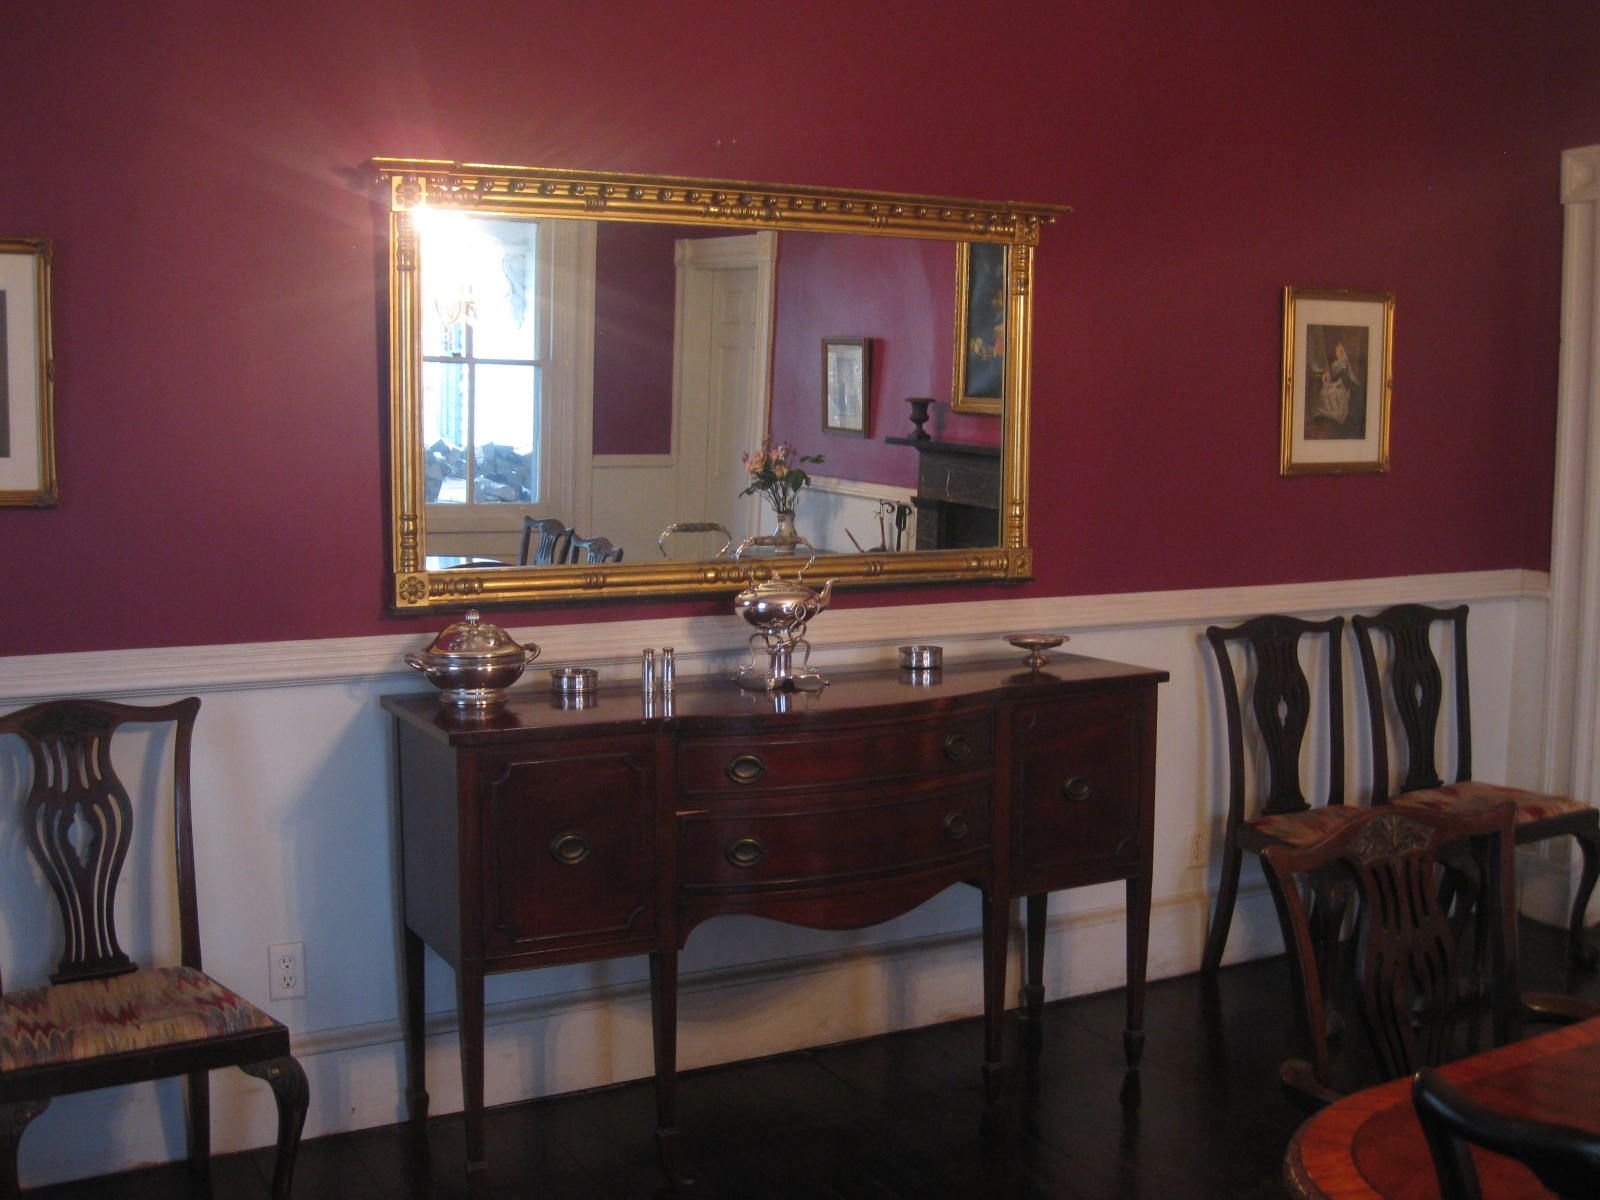 Dining Room Ideas Chair Rail painting+a+room+with+a+chair+rail | used a plum-colored paint for